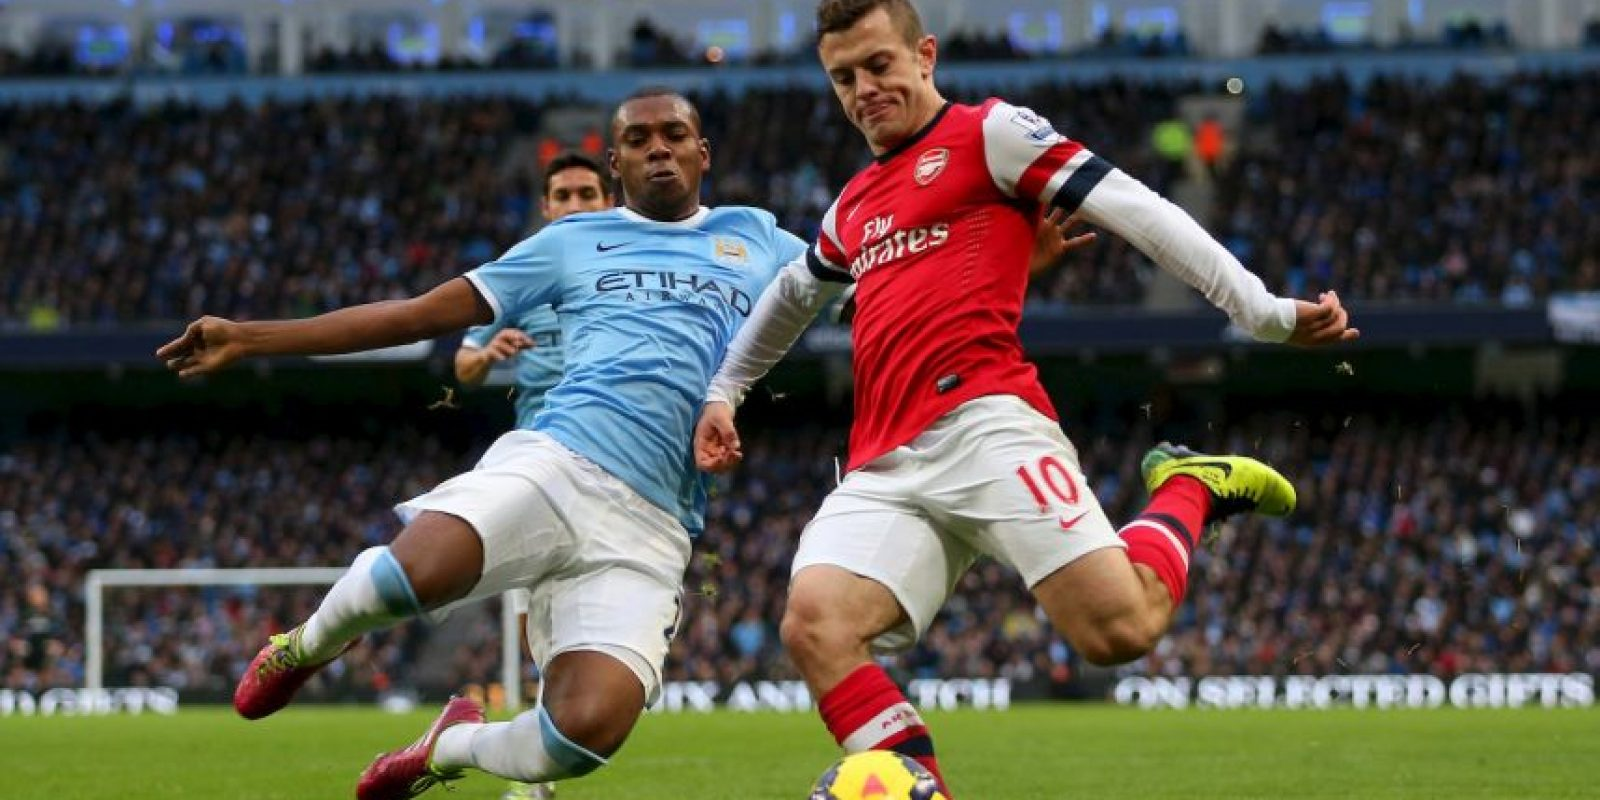 Arsenal vs. Manchester City Foto: Getty Images